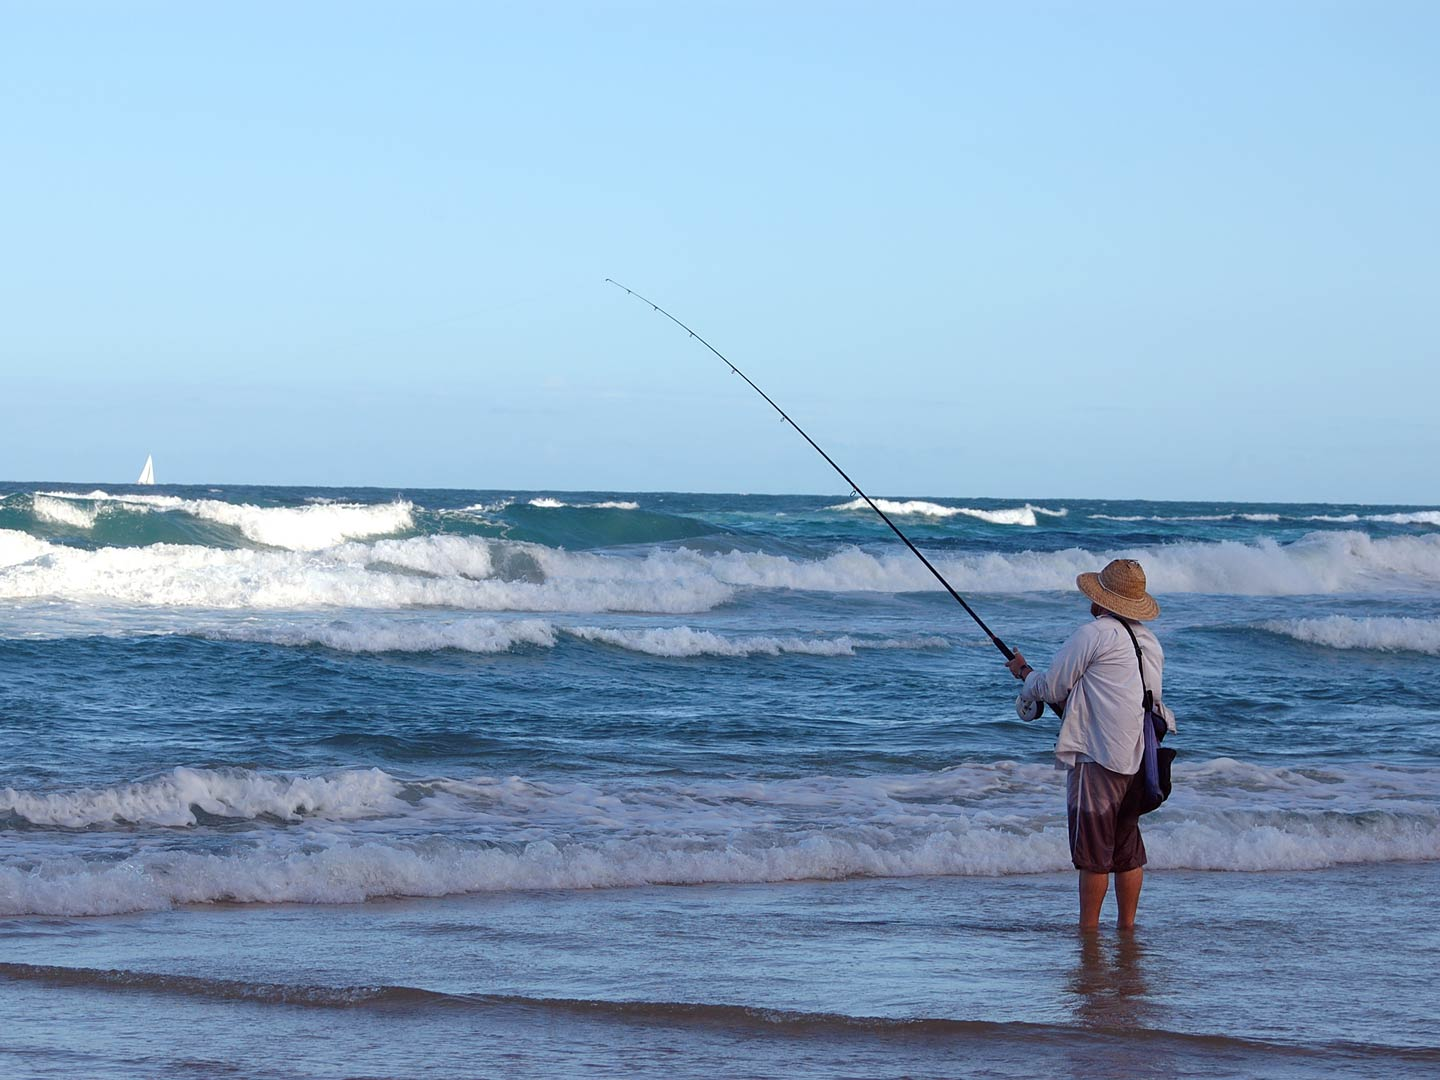 An angler fishing from a beach as the waves are coming in